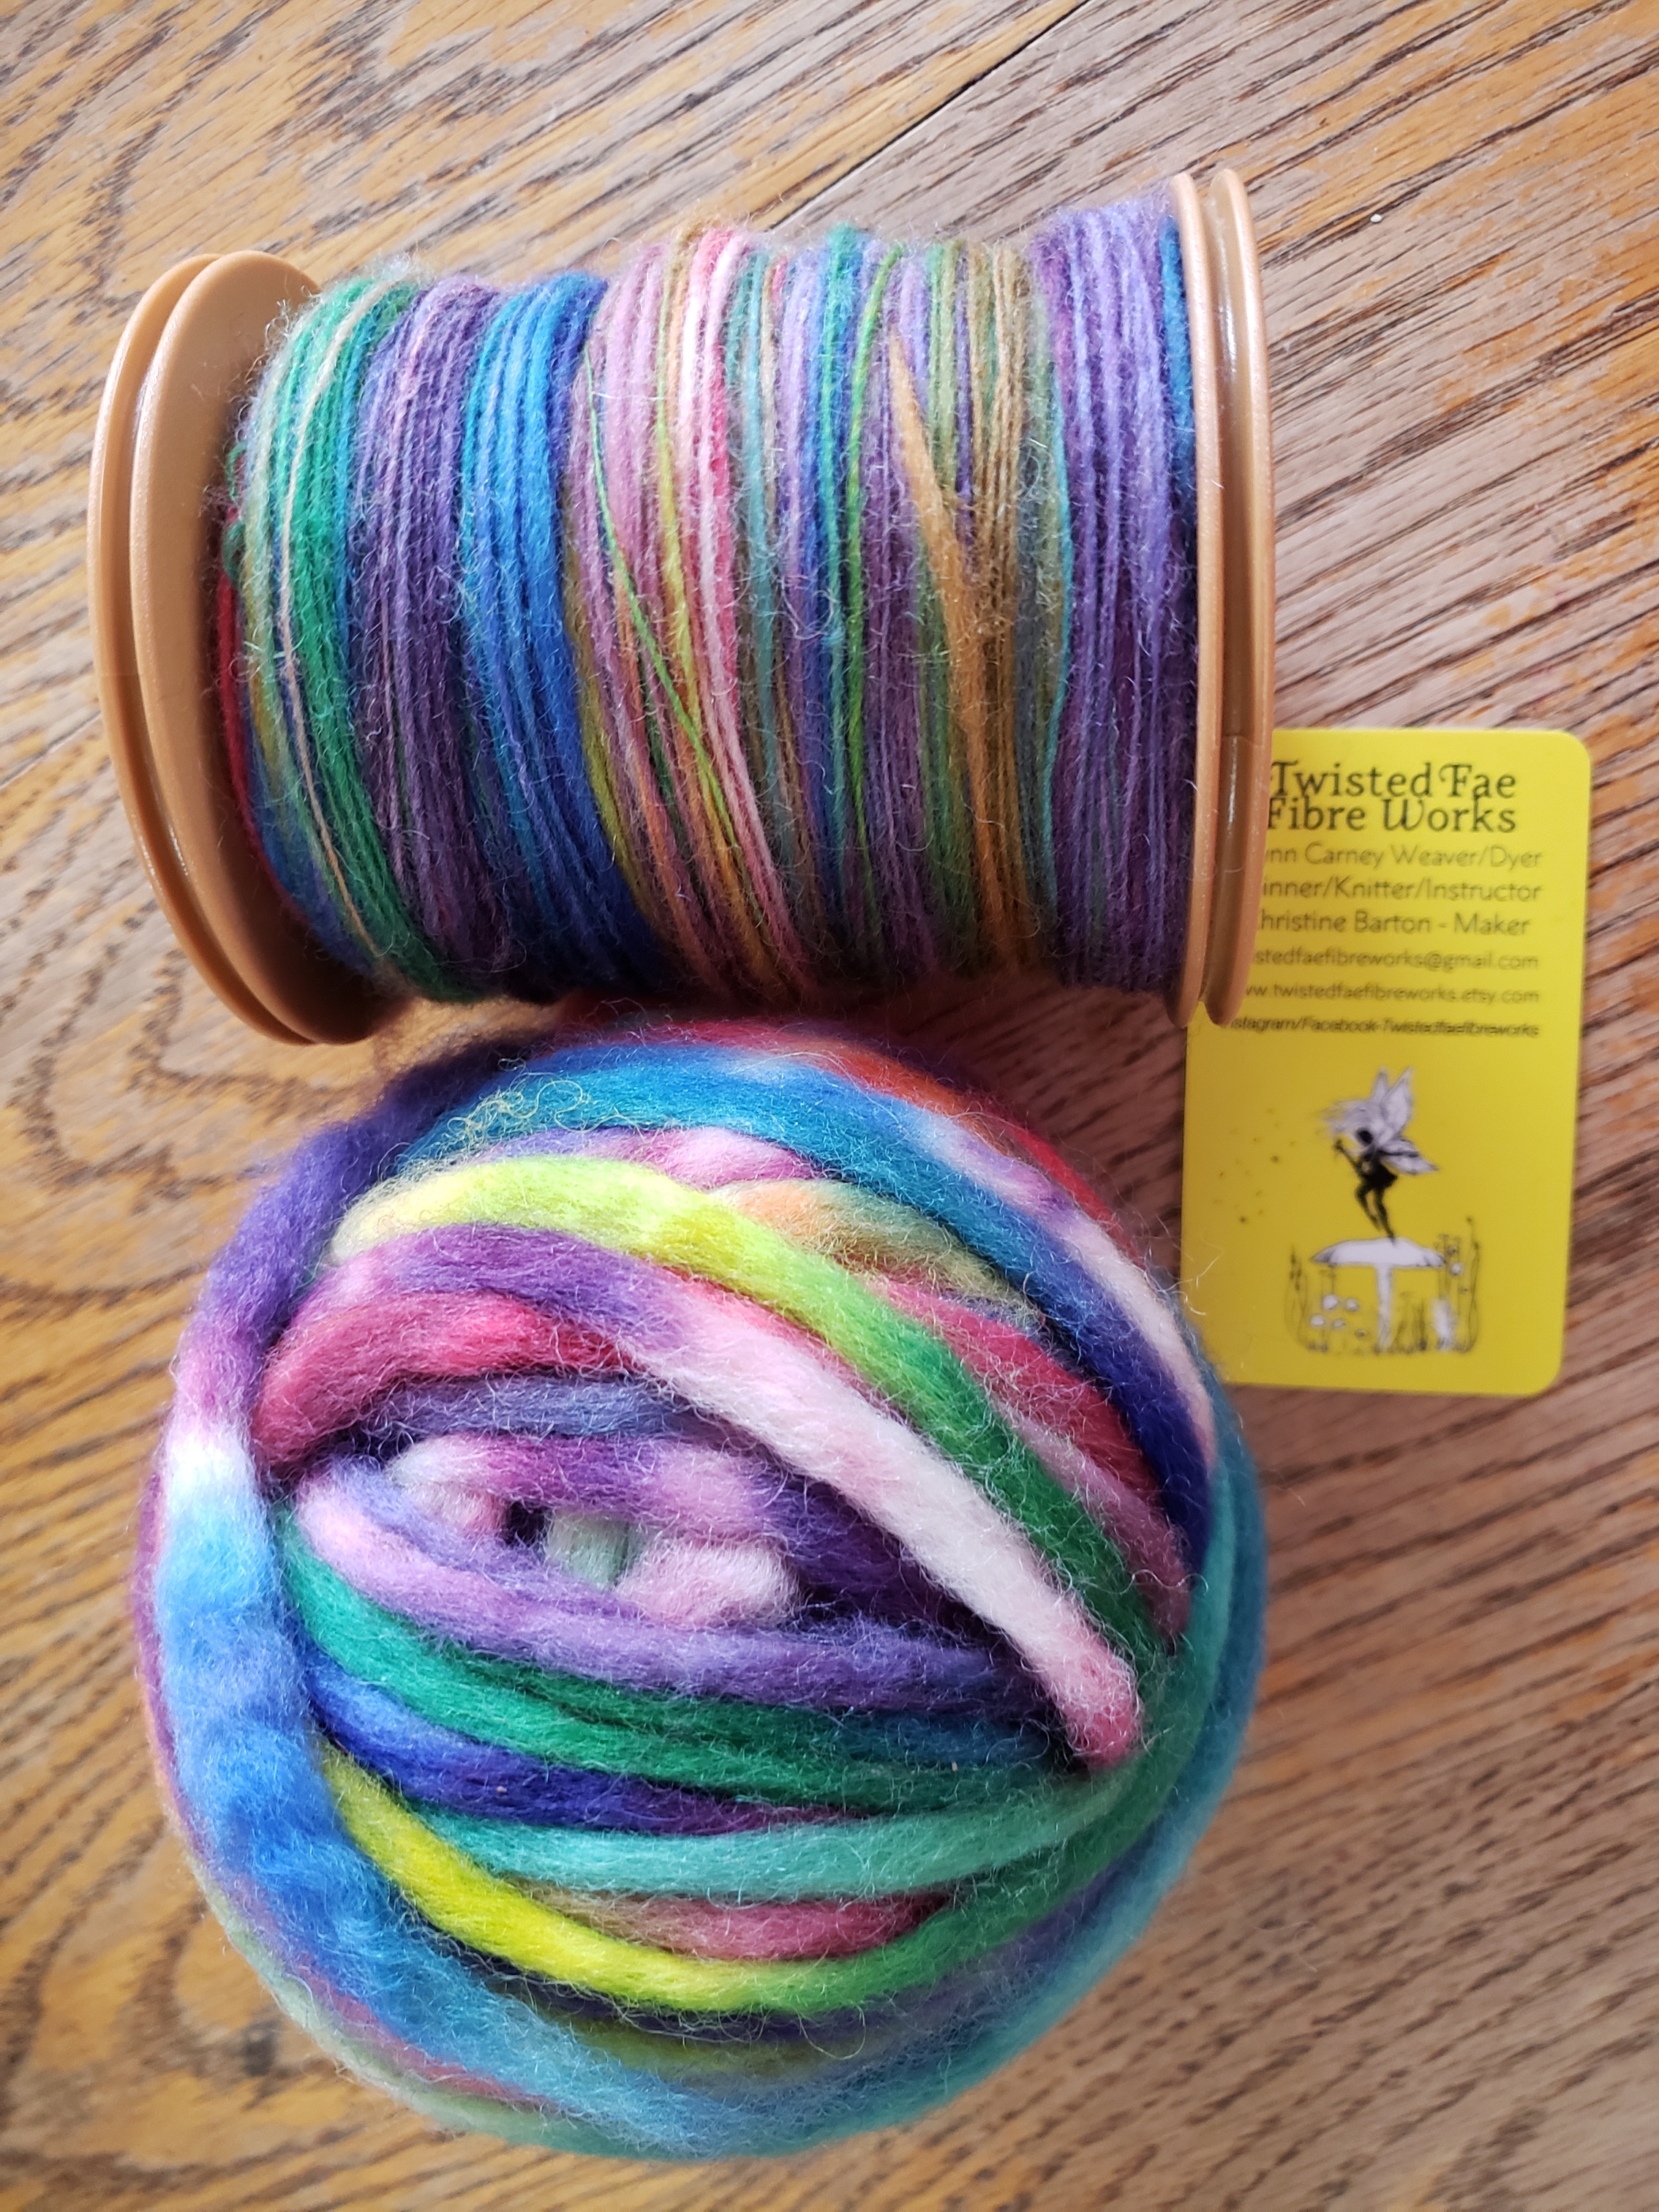 Birthe - dyed merino pencil roving from Twisted Fae Fibre Works and as a spun single.